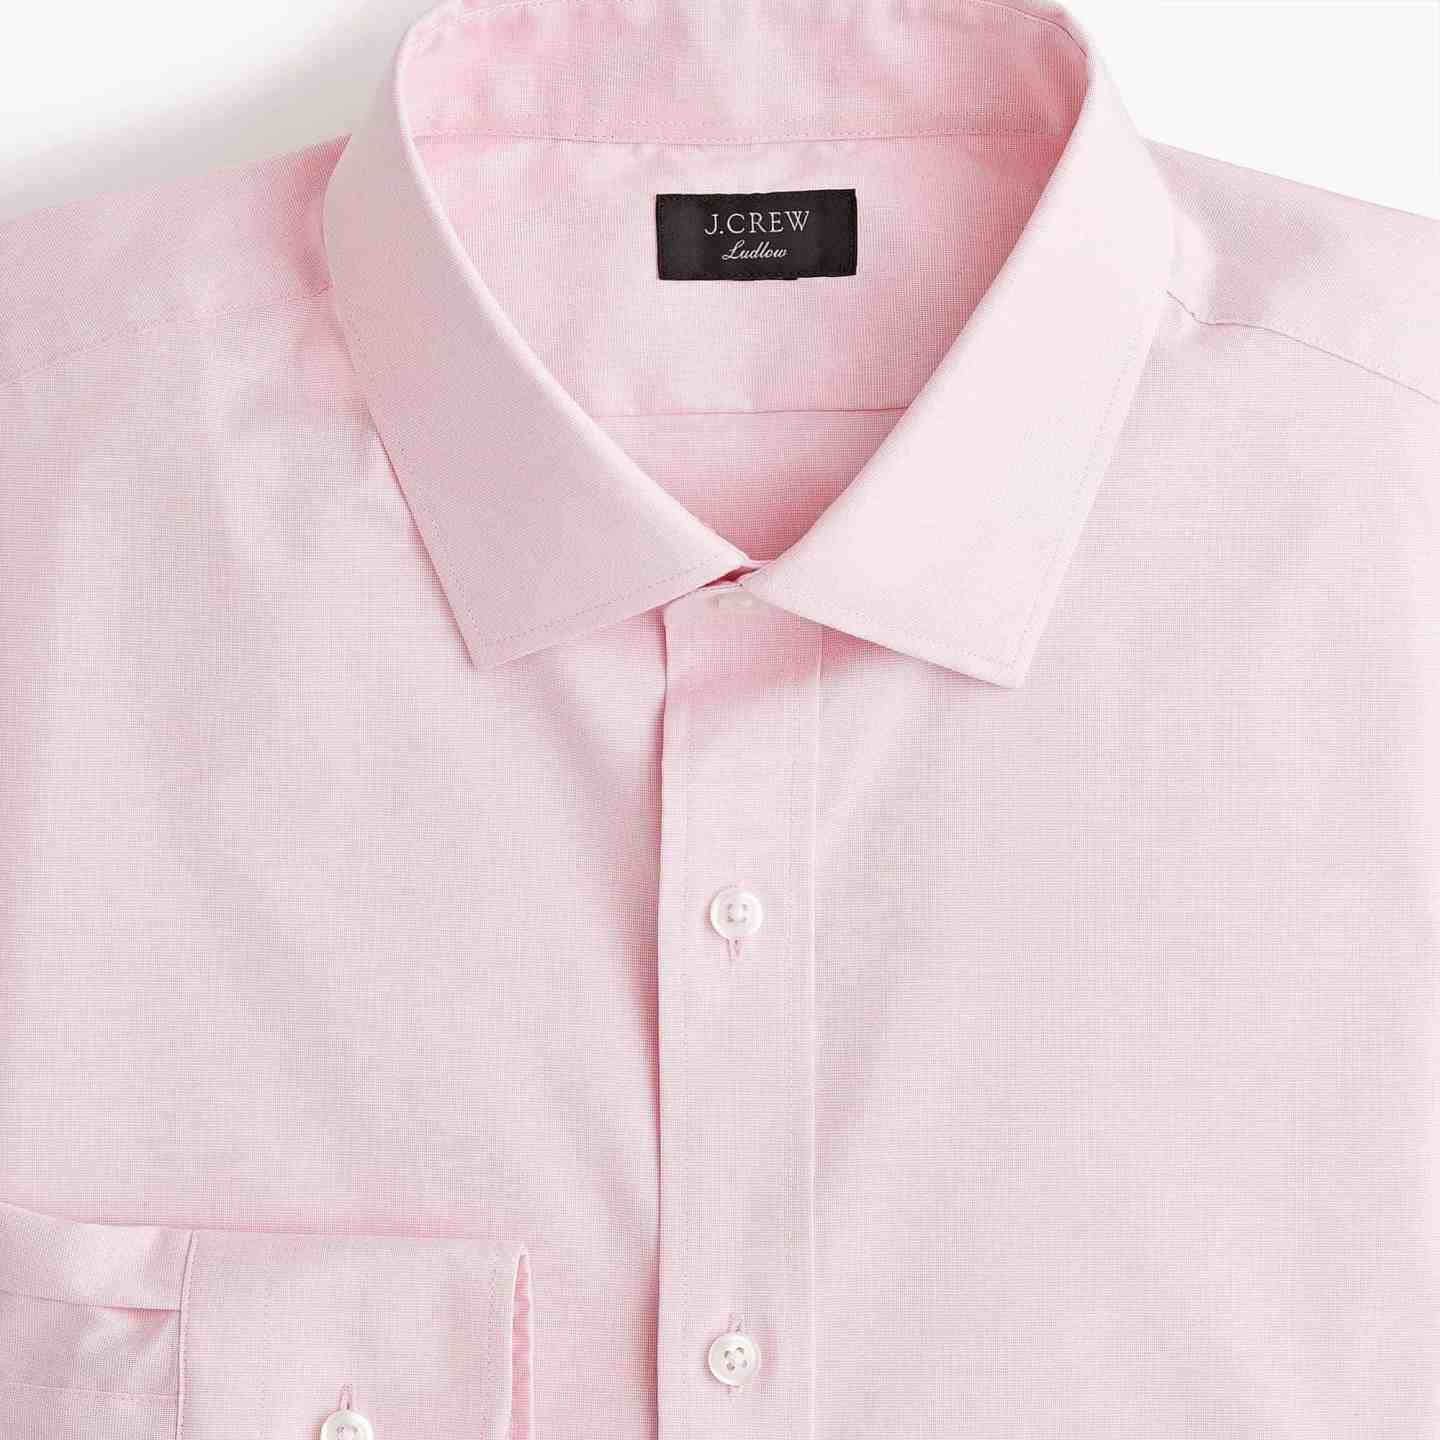 jcrew mens dress shirt spring